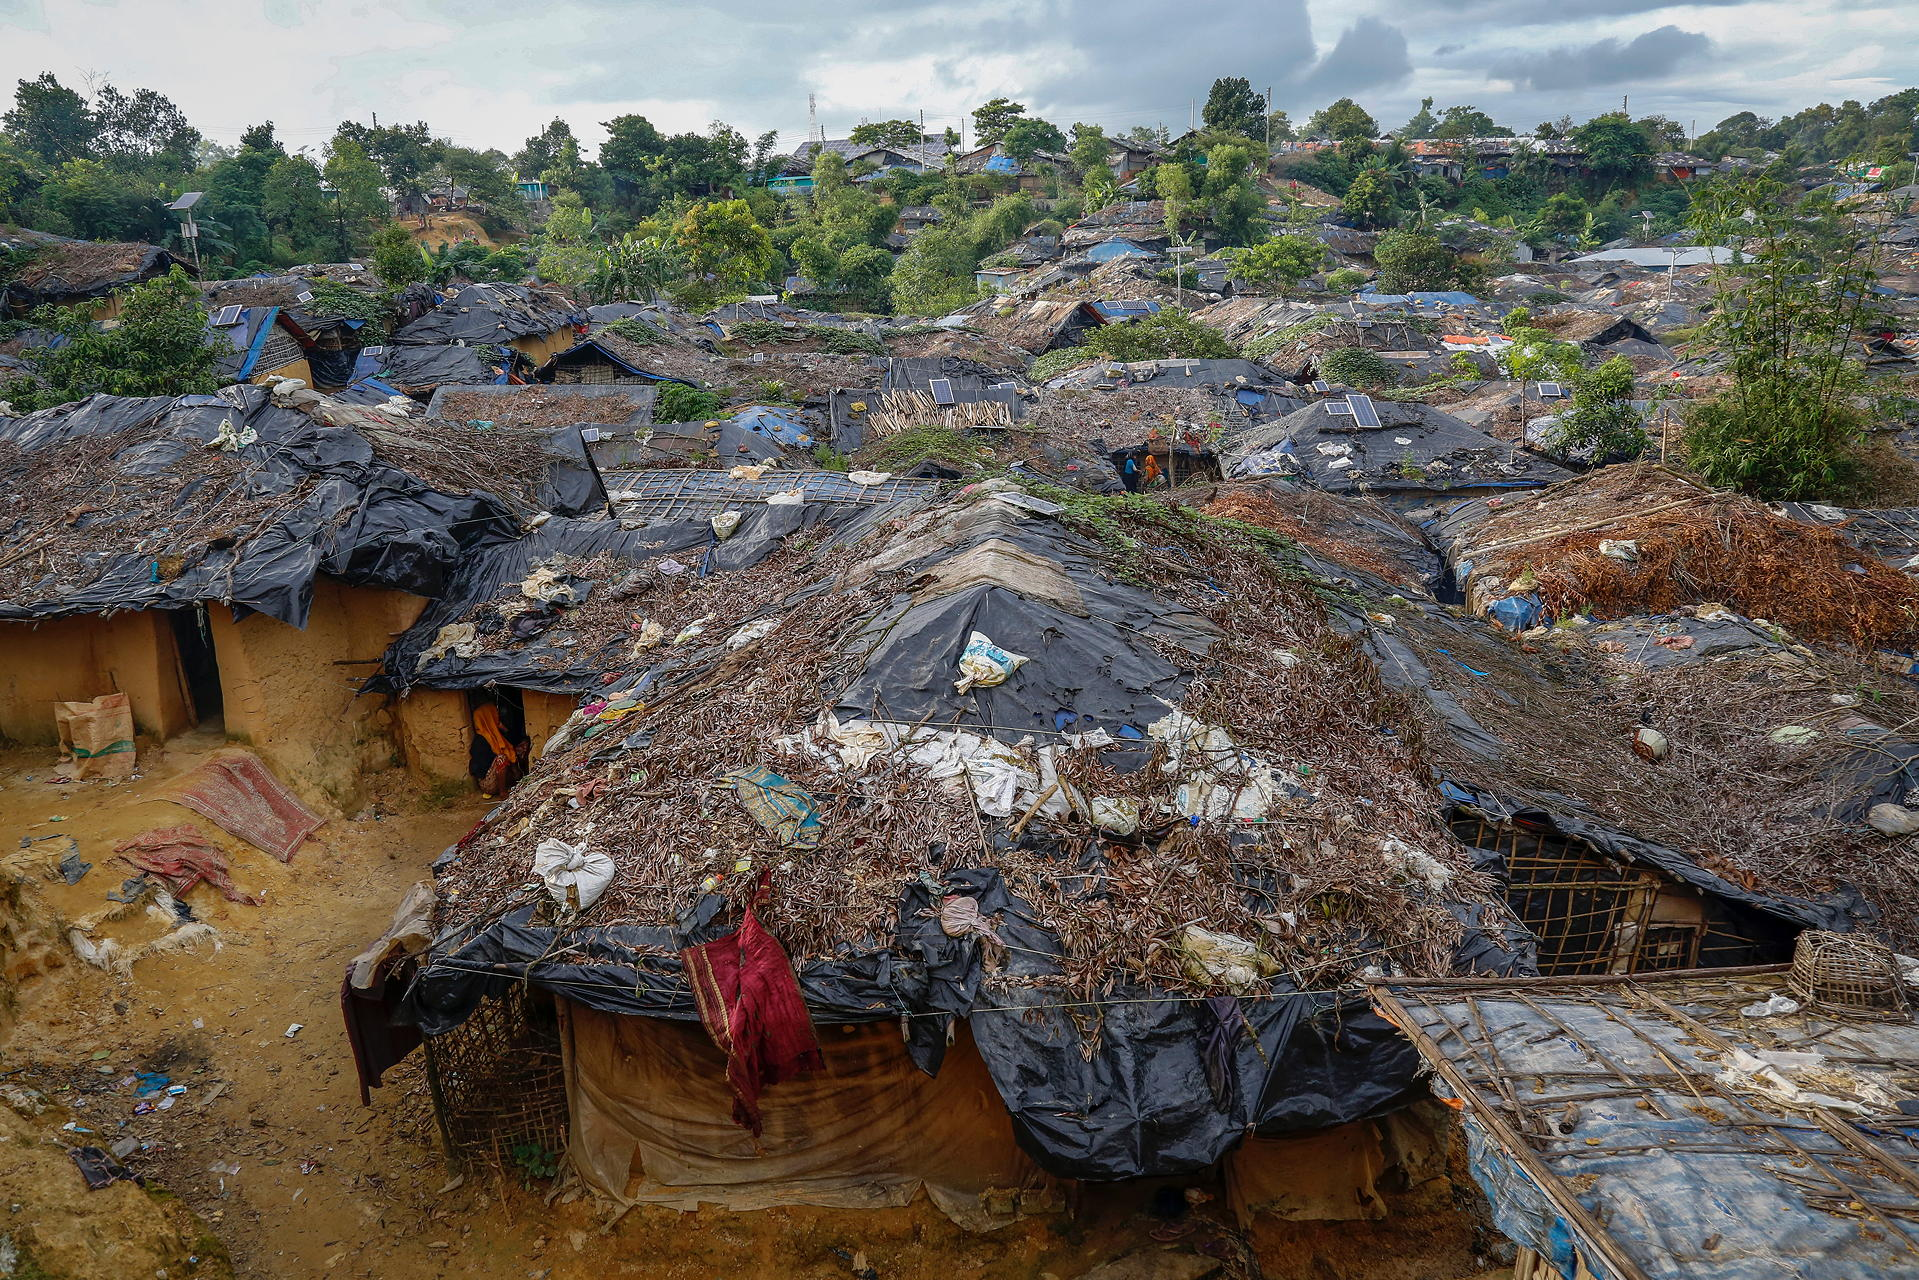 Md. Akhlas Uddin - Rohingya Refugee Camp - Felix Schoeller Photoaward